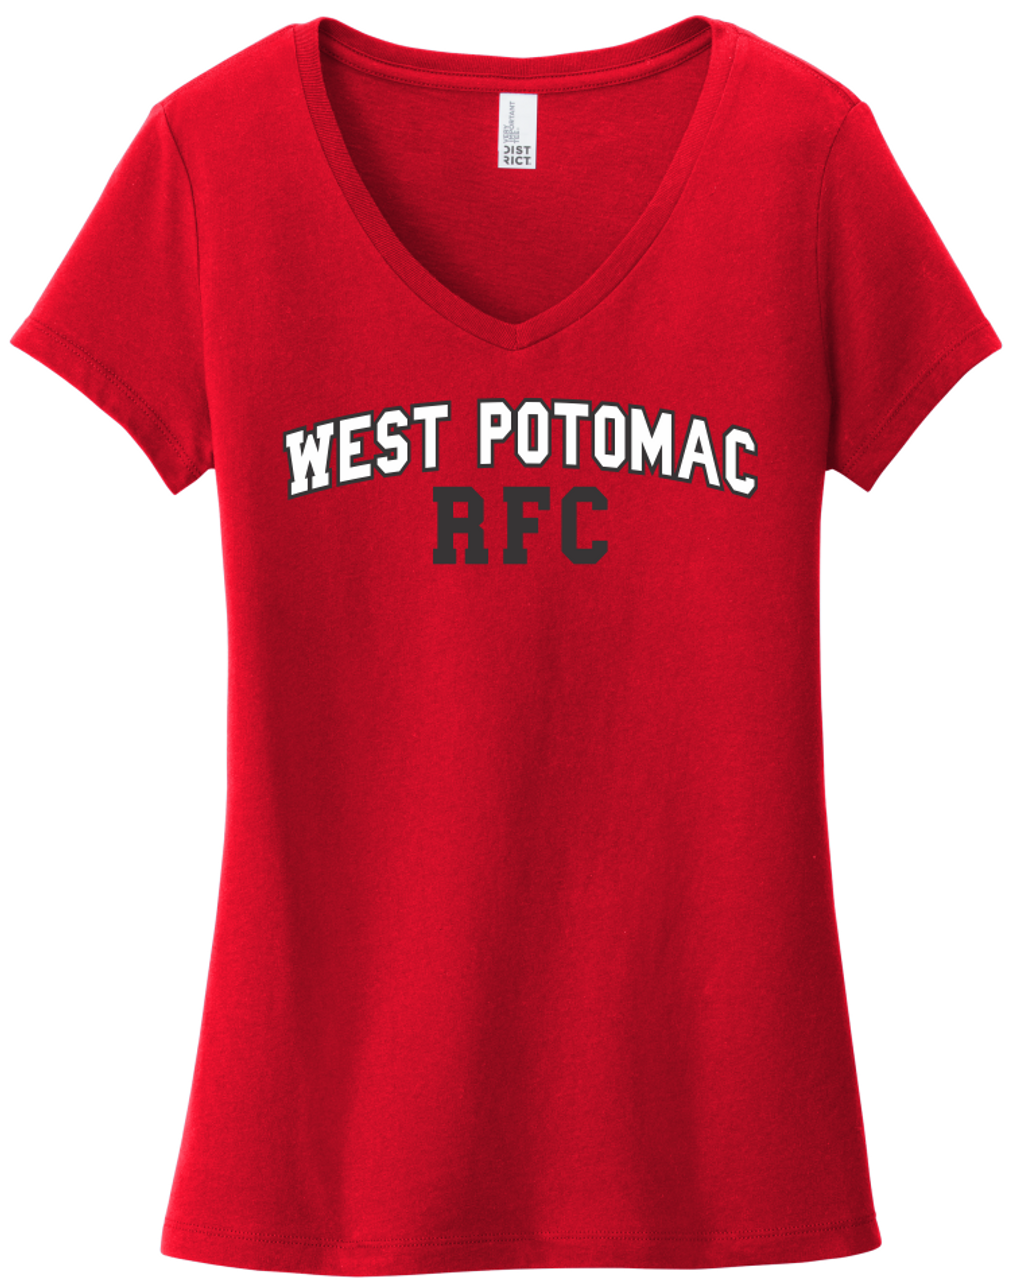 West Potomac Ladies-Cut V-Neck Tee